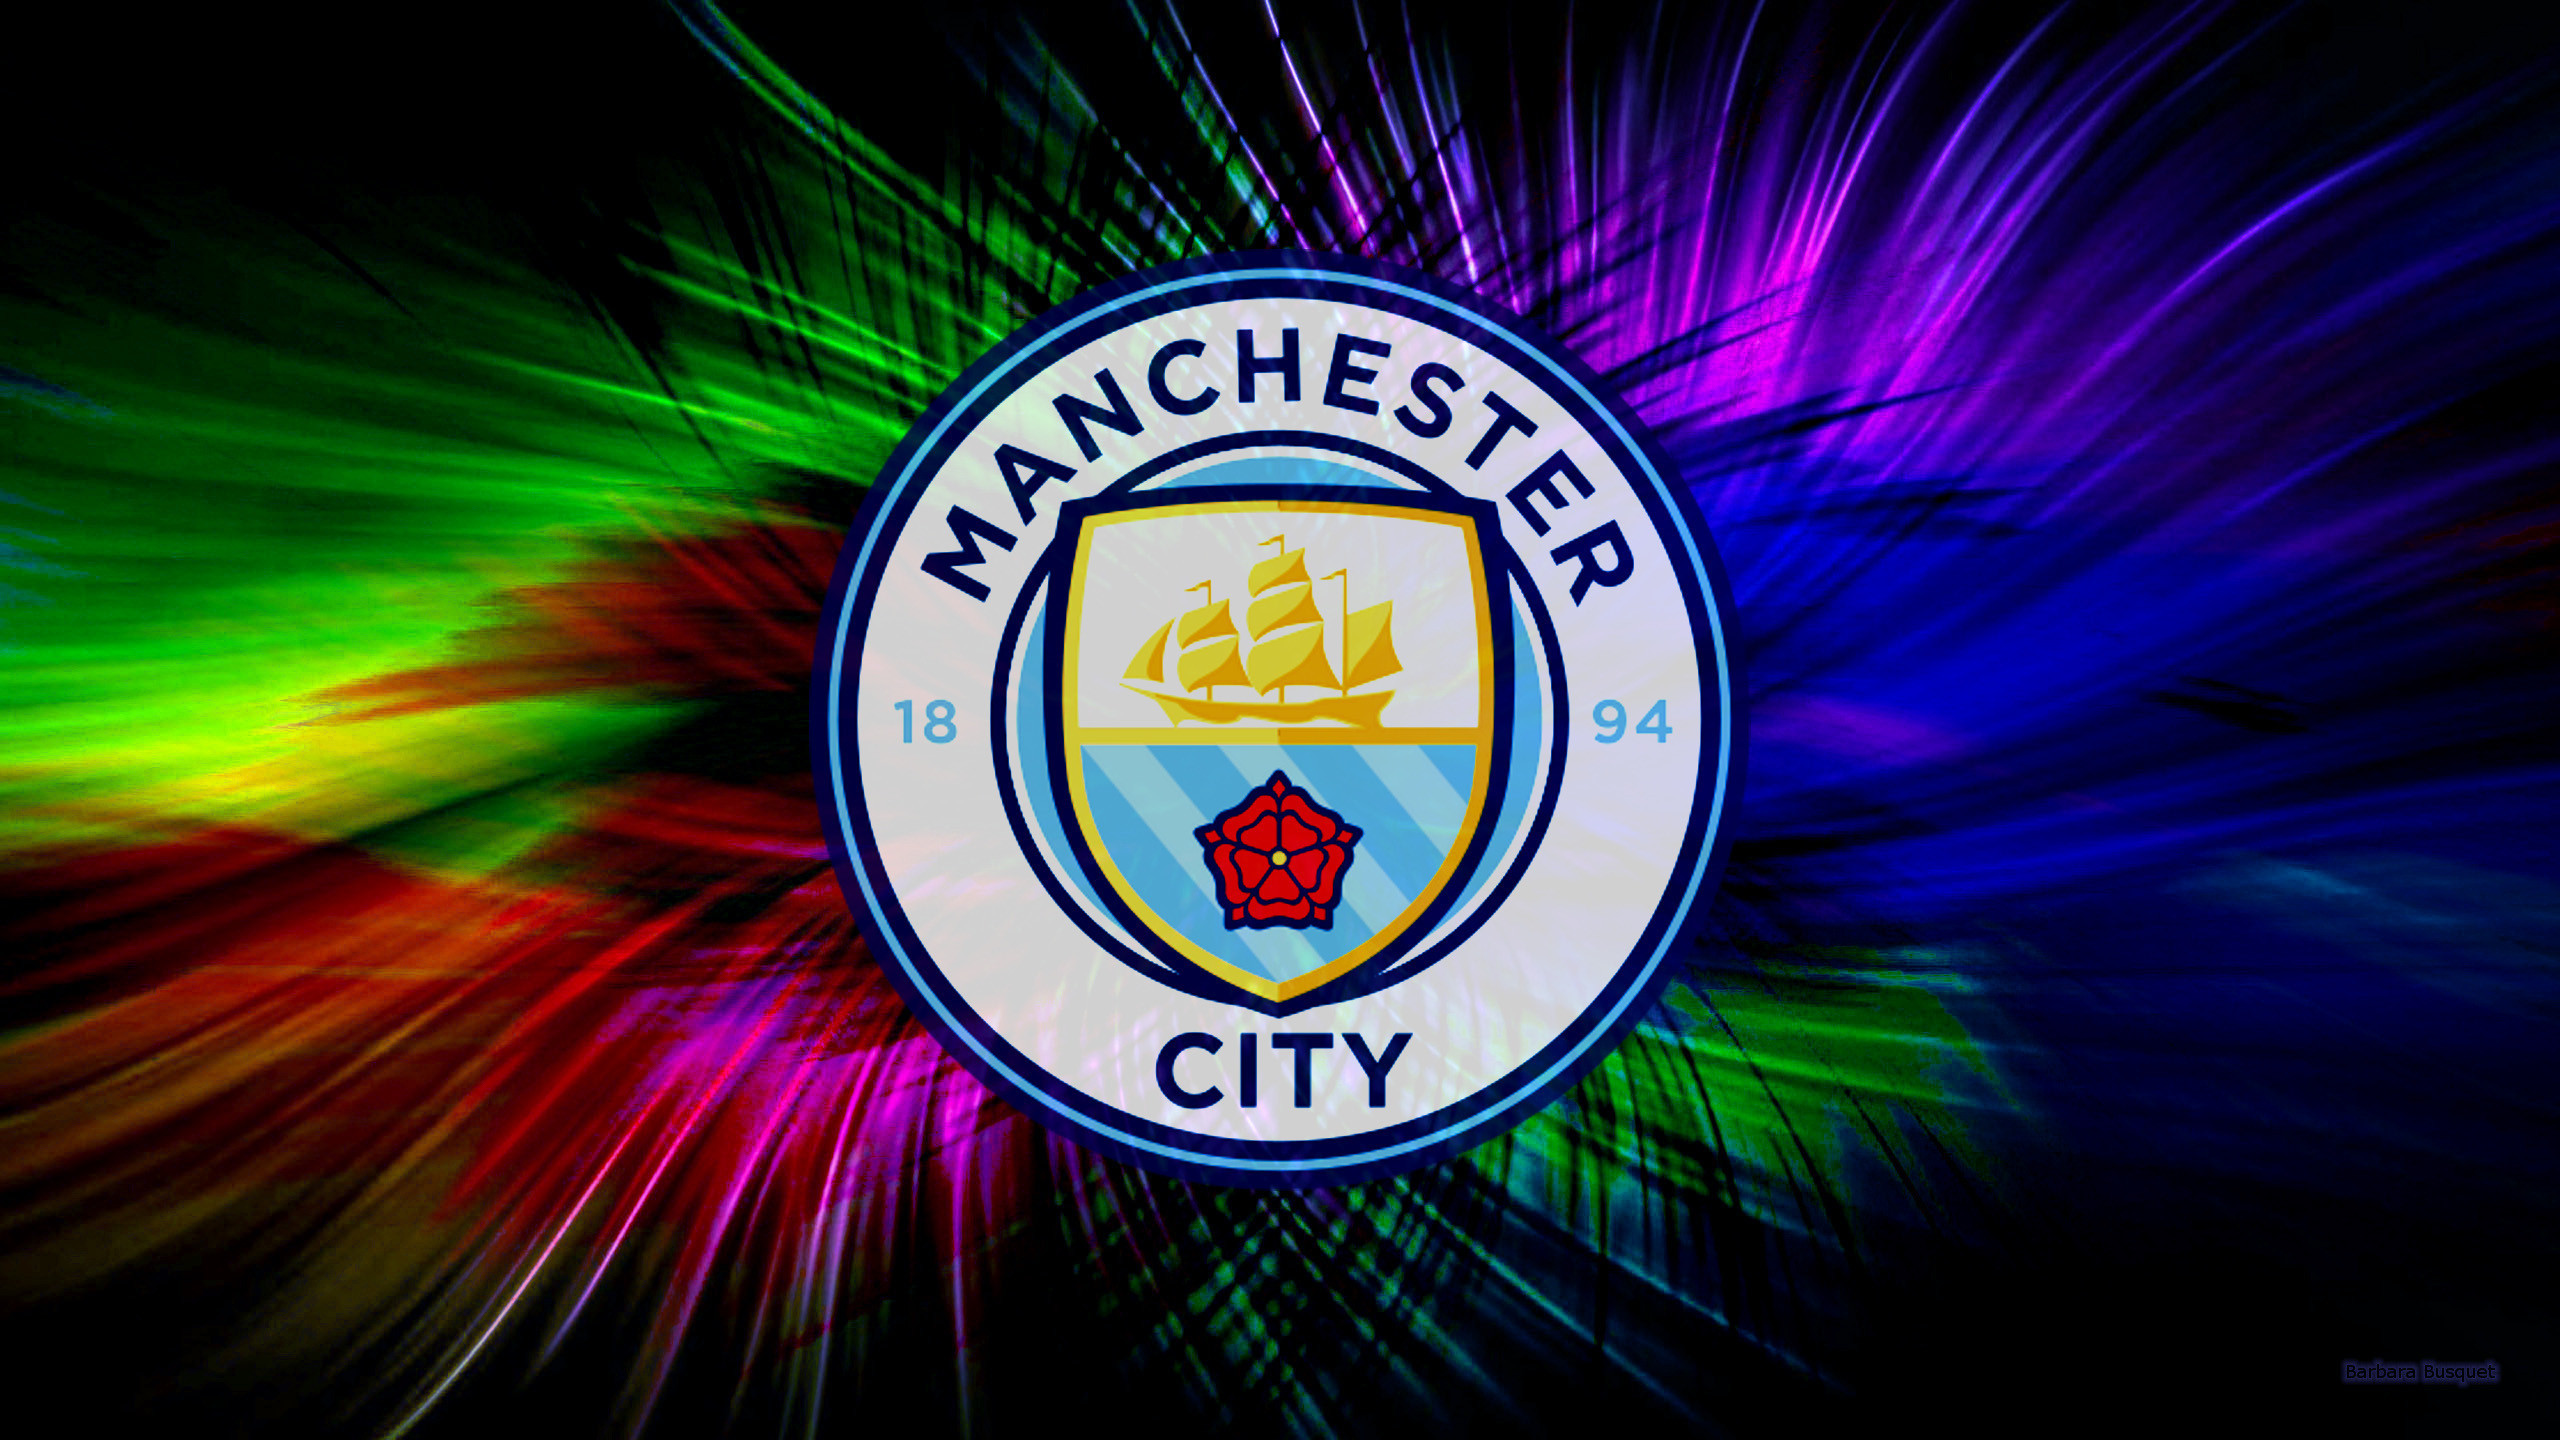 2560x1440 ... Affordable Manchester City Wallpaper Desktop Wallpaper HD Widescreen  Free Download 4K Picture HD Wallpapers 1080p Widescreen